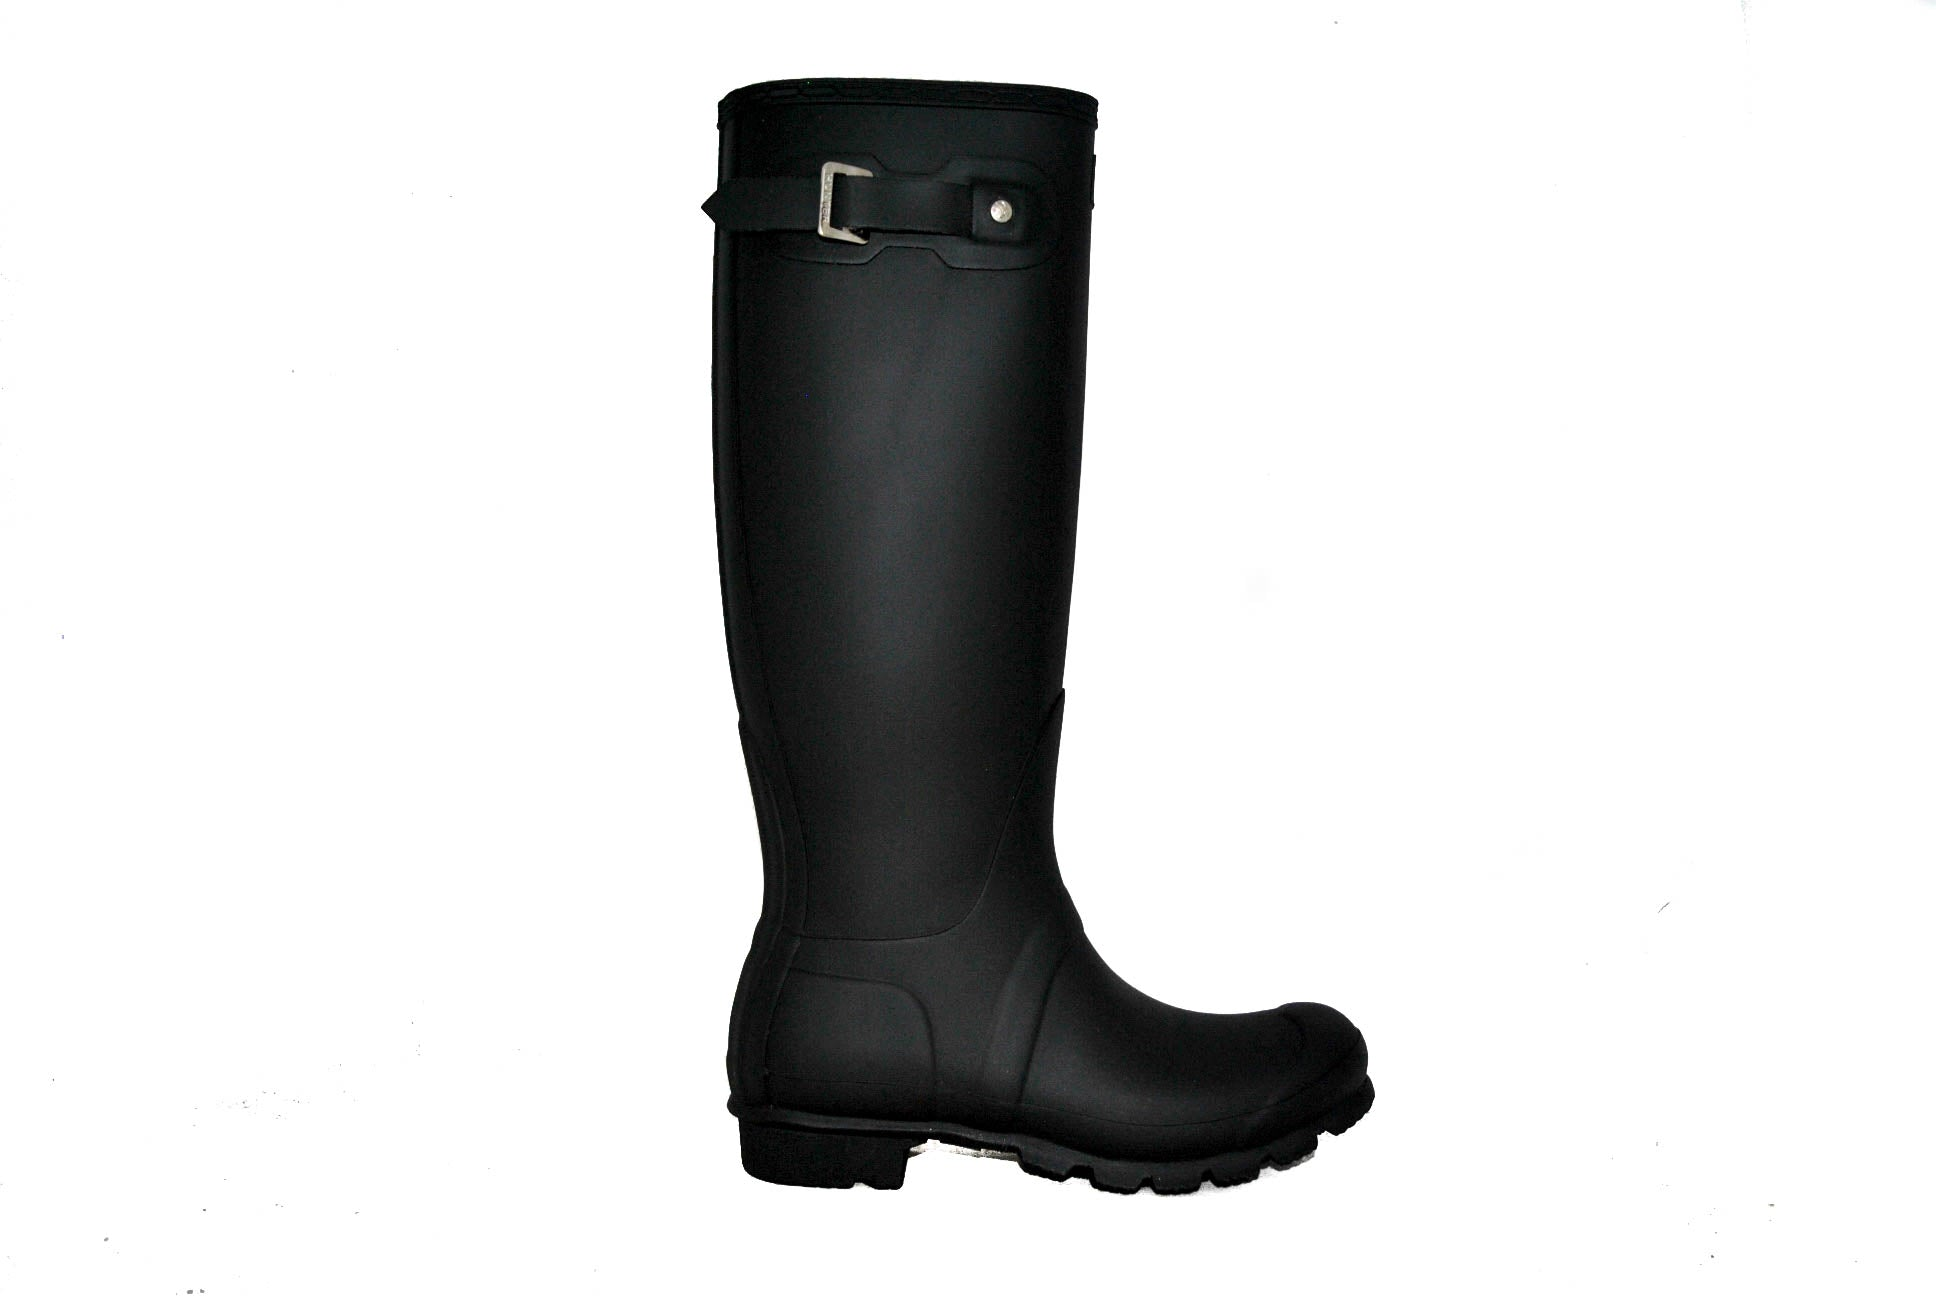 Hunter Women's Original Tall Rain Boot in Black